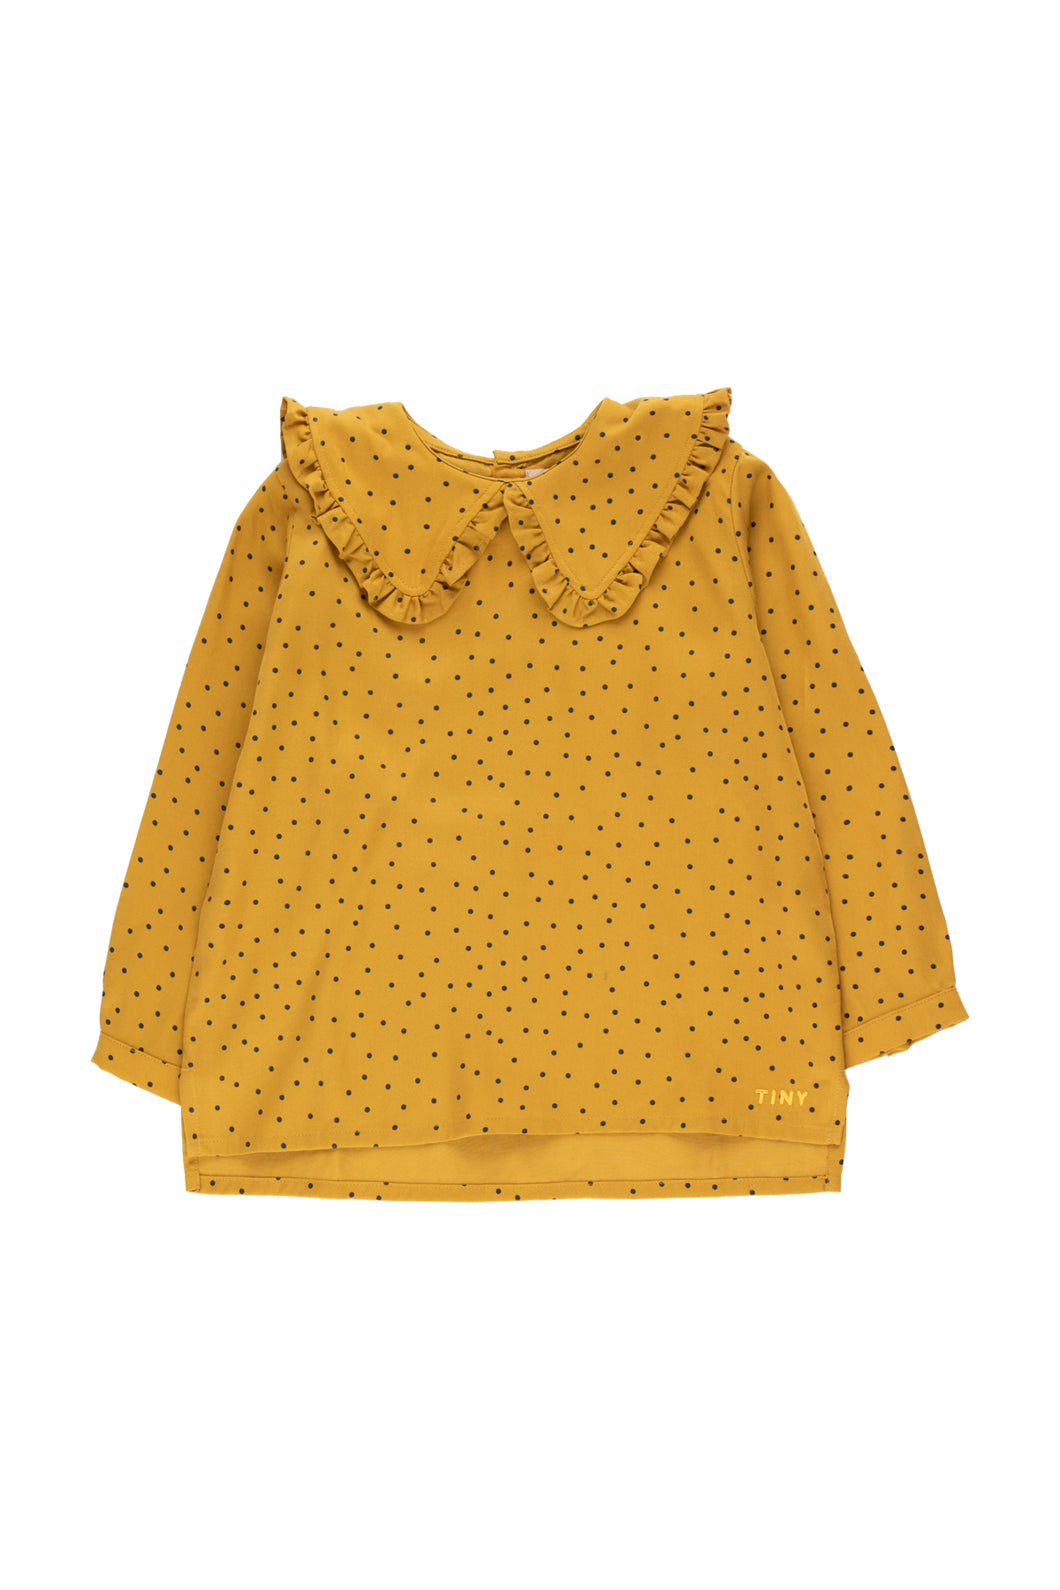 Tiny Dots Shirt